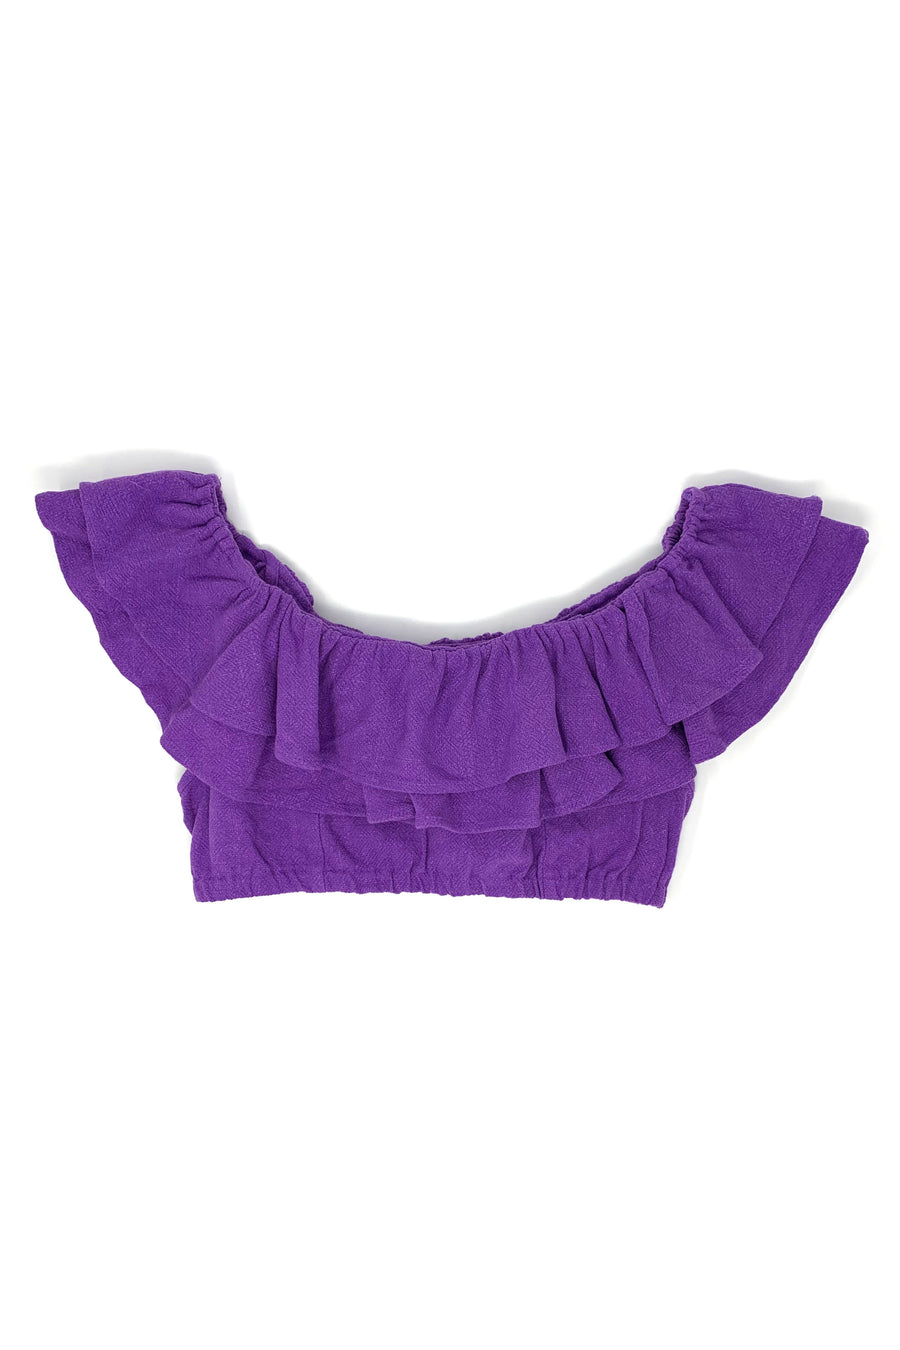 BACKORDERED Purple Linen Flamenco Crop